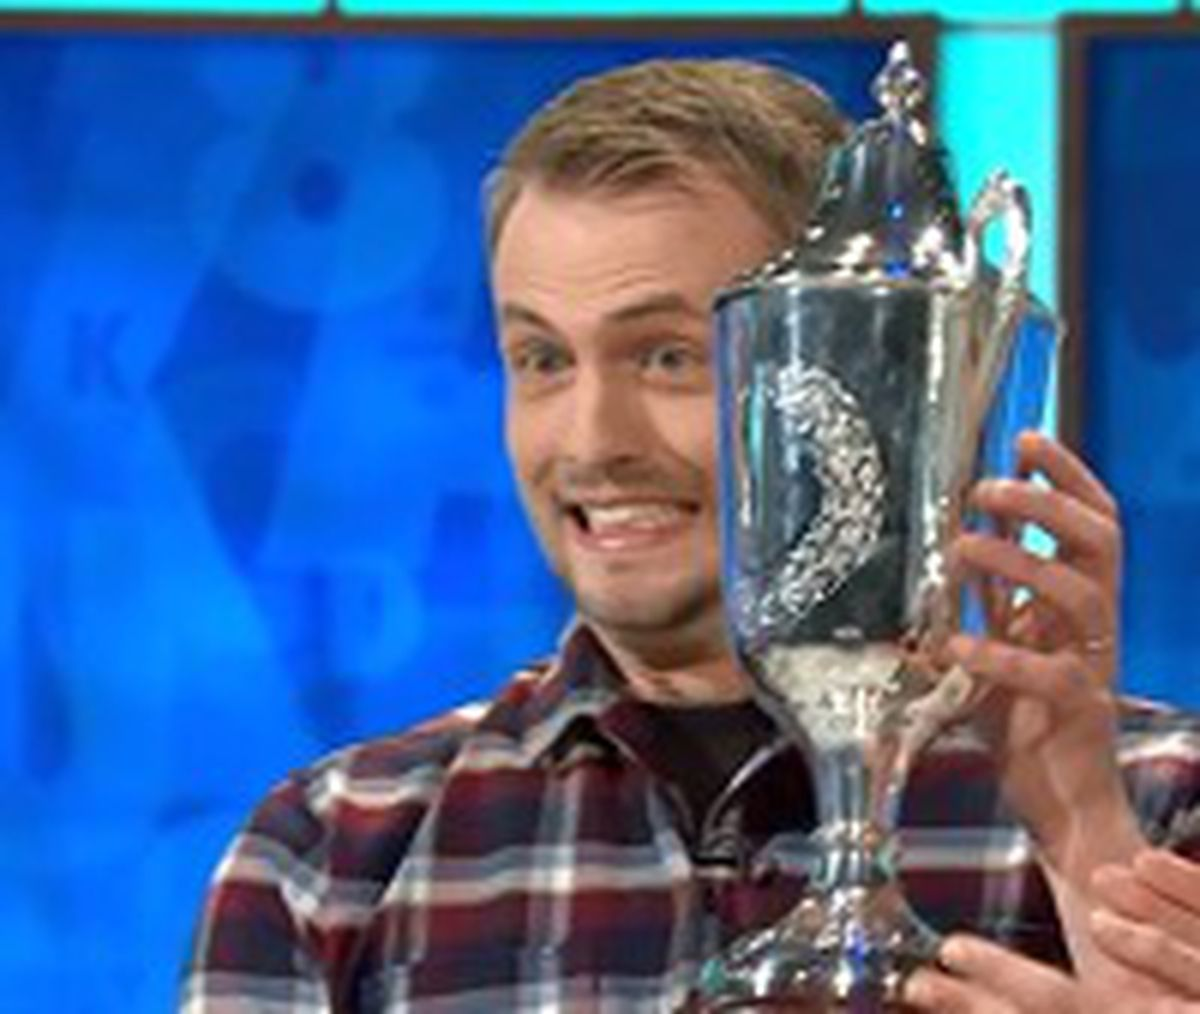 Tom Chafer-Cook with the Richard Whitfield Memorial Trophy after being named Countdown champion